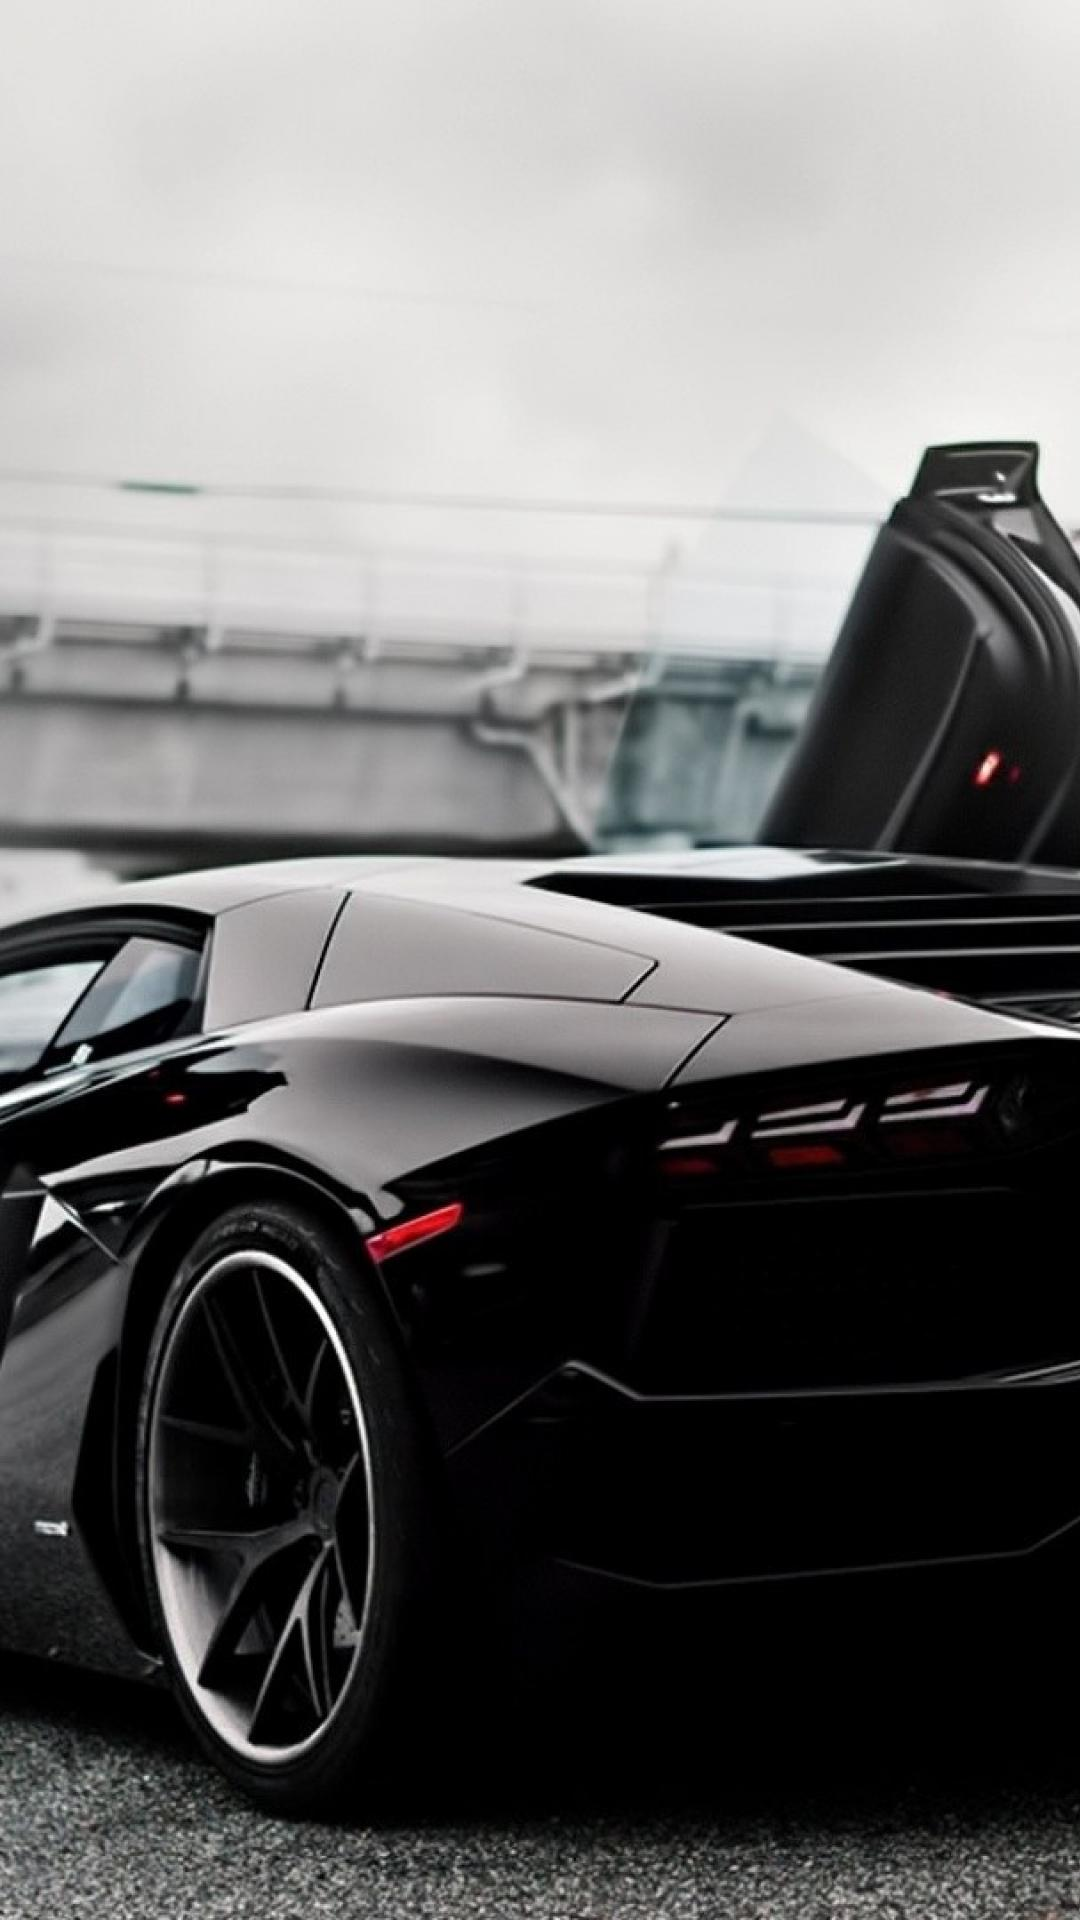 Hd Car Wallpaper For Mobile Free Download